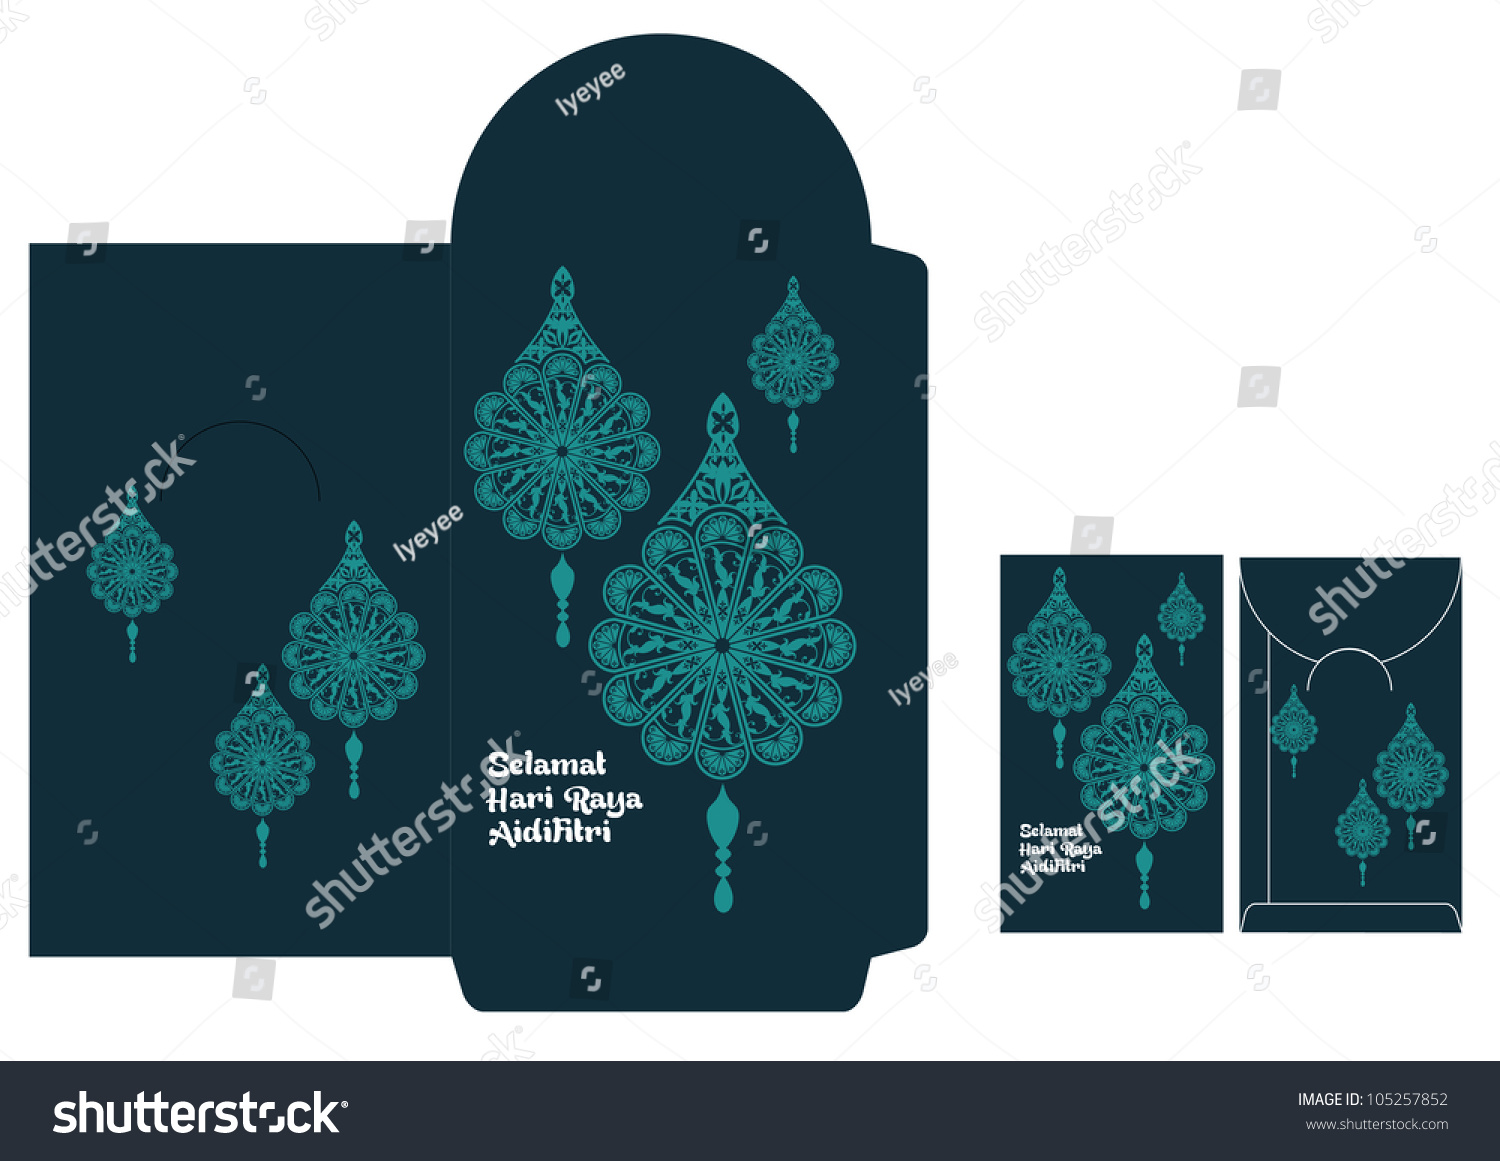 vectors packet Free vector pack packages- download royalty free vector packs, cool vector pack for web developers and graphics designer.